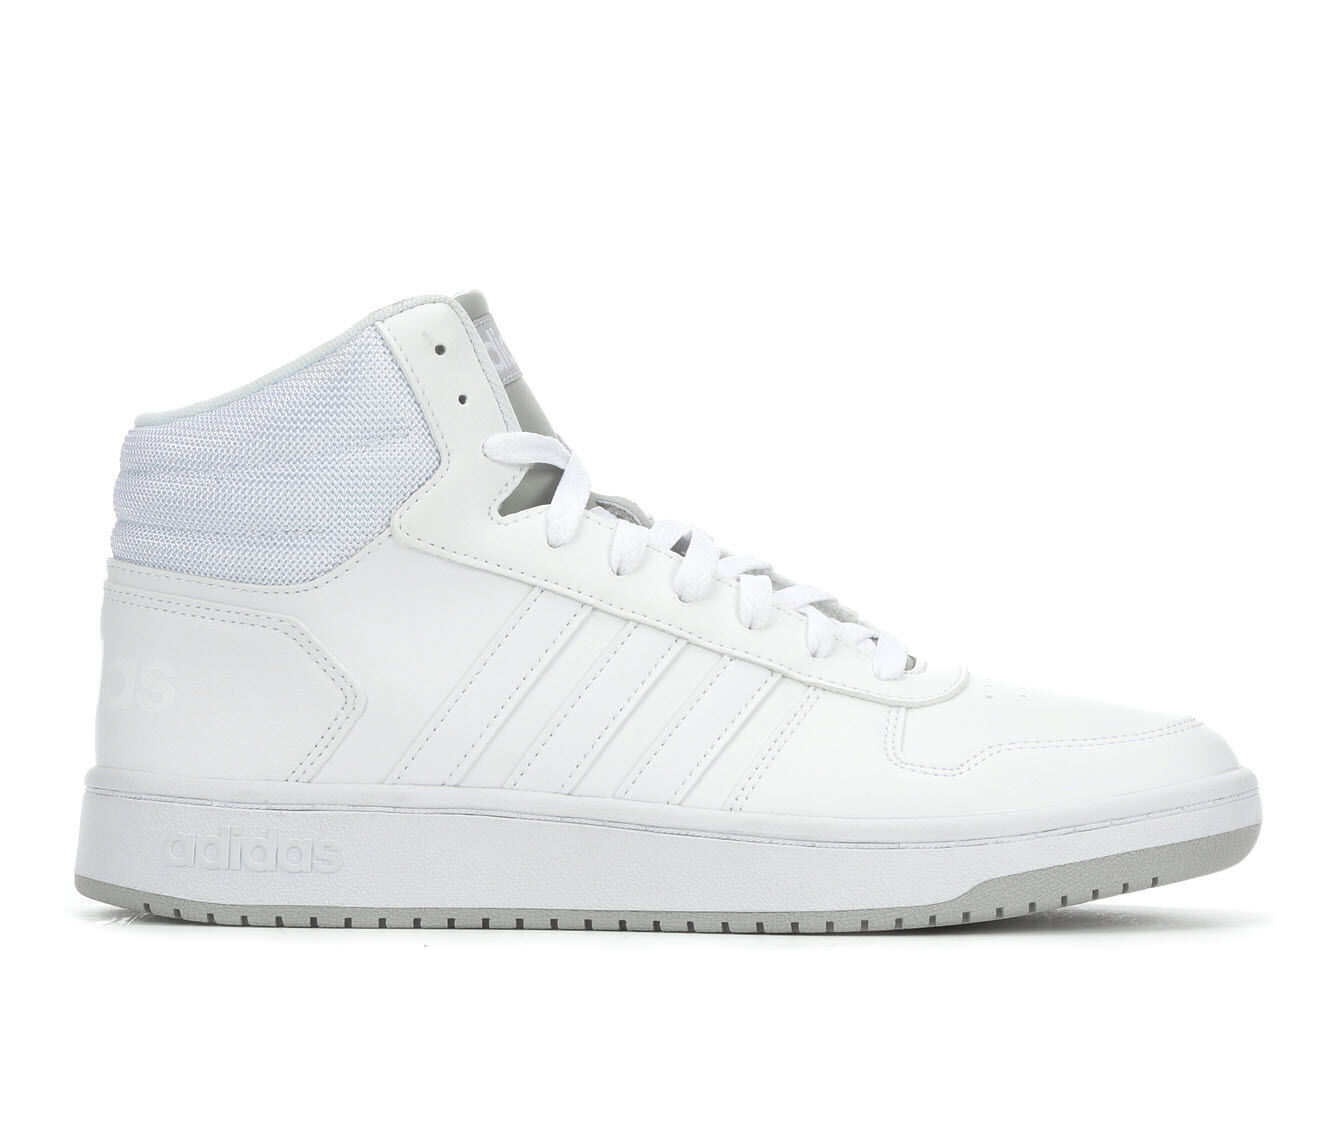 Men's Adidas Hoops 2.0 Mid Retro Sneakers Wht/Wht/Gry